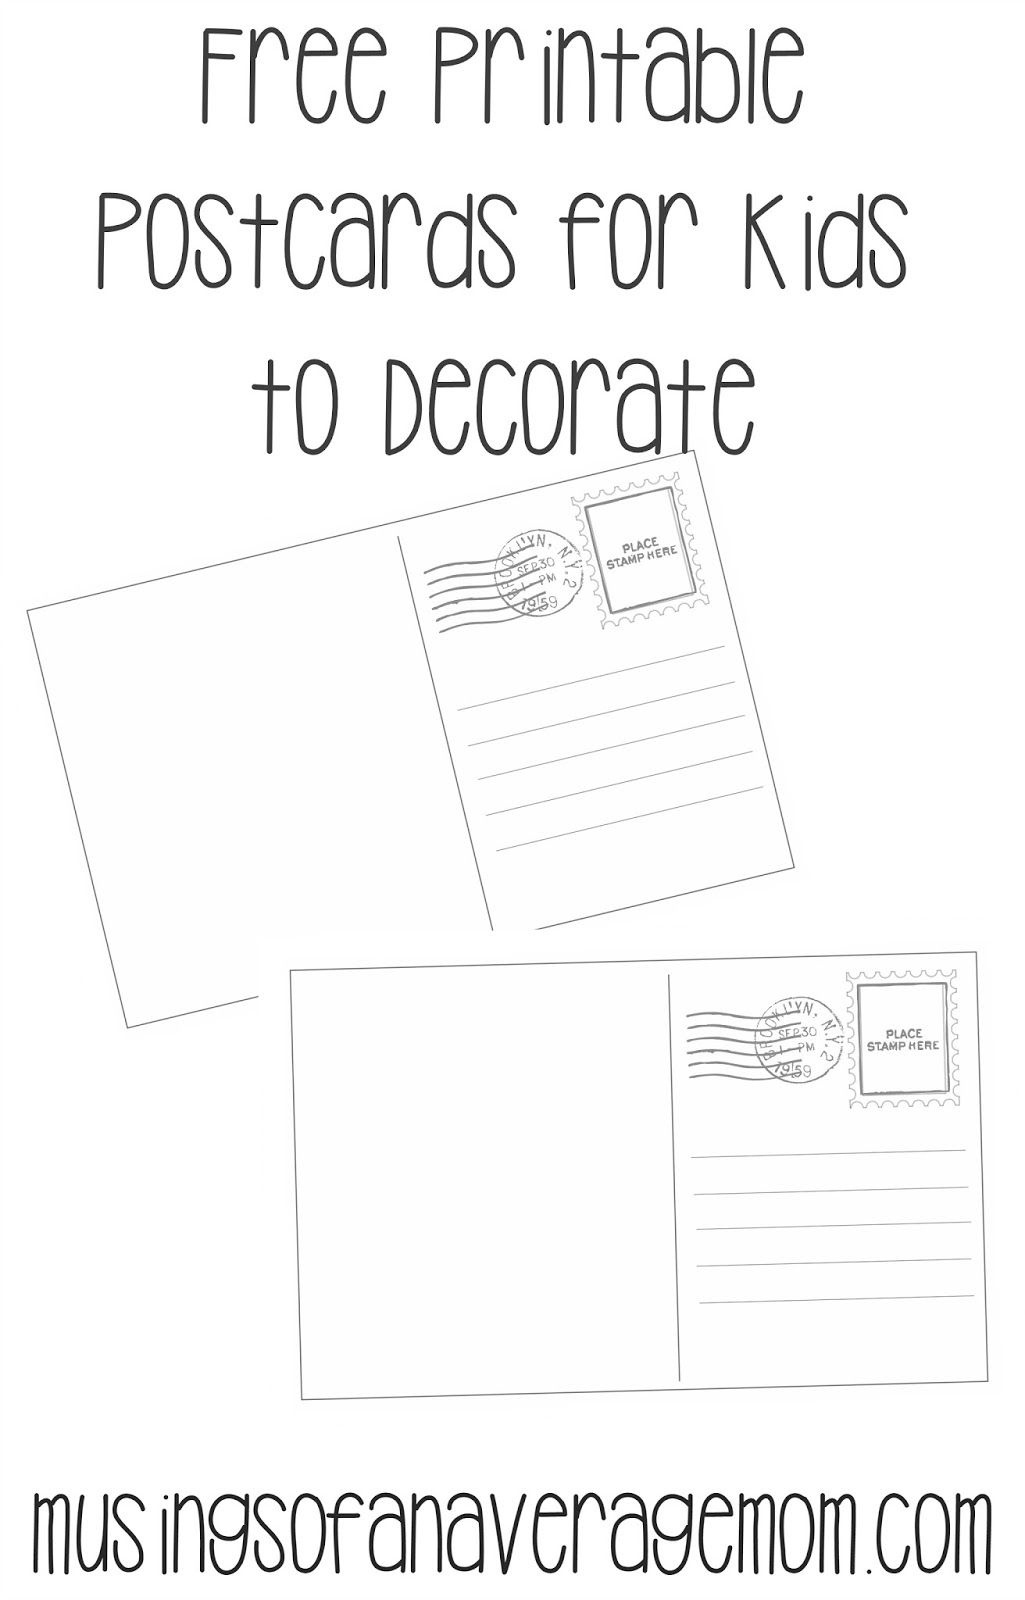 Postcard Templates | Printable Worksheets | Printable Postcards - Free Printable Postcards